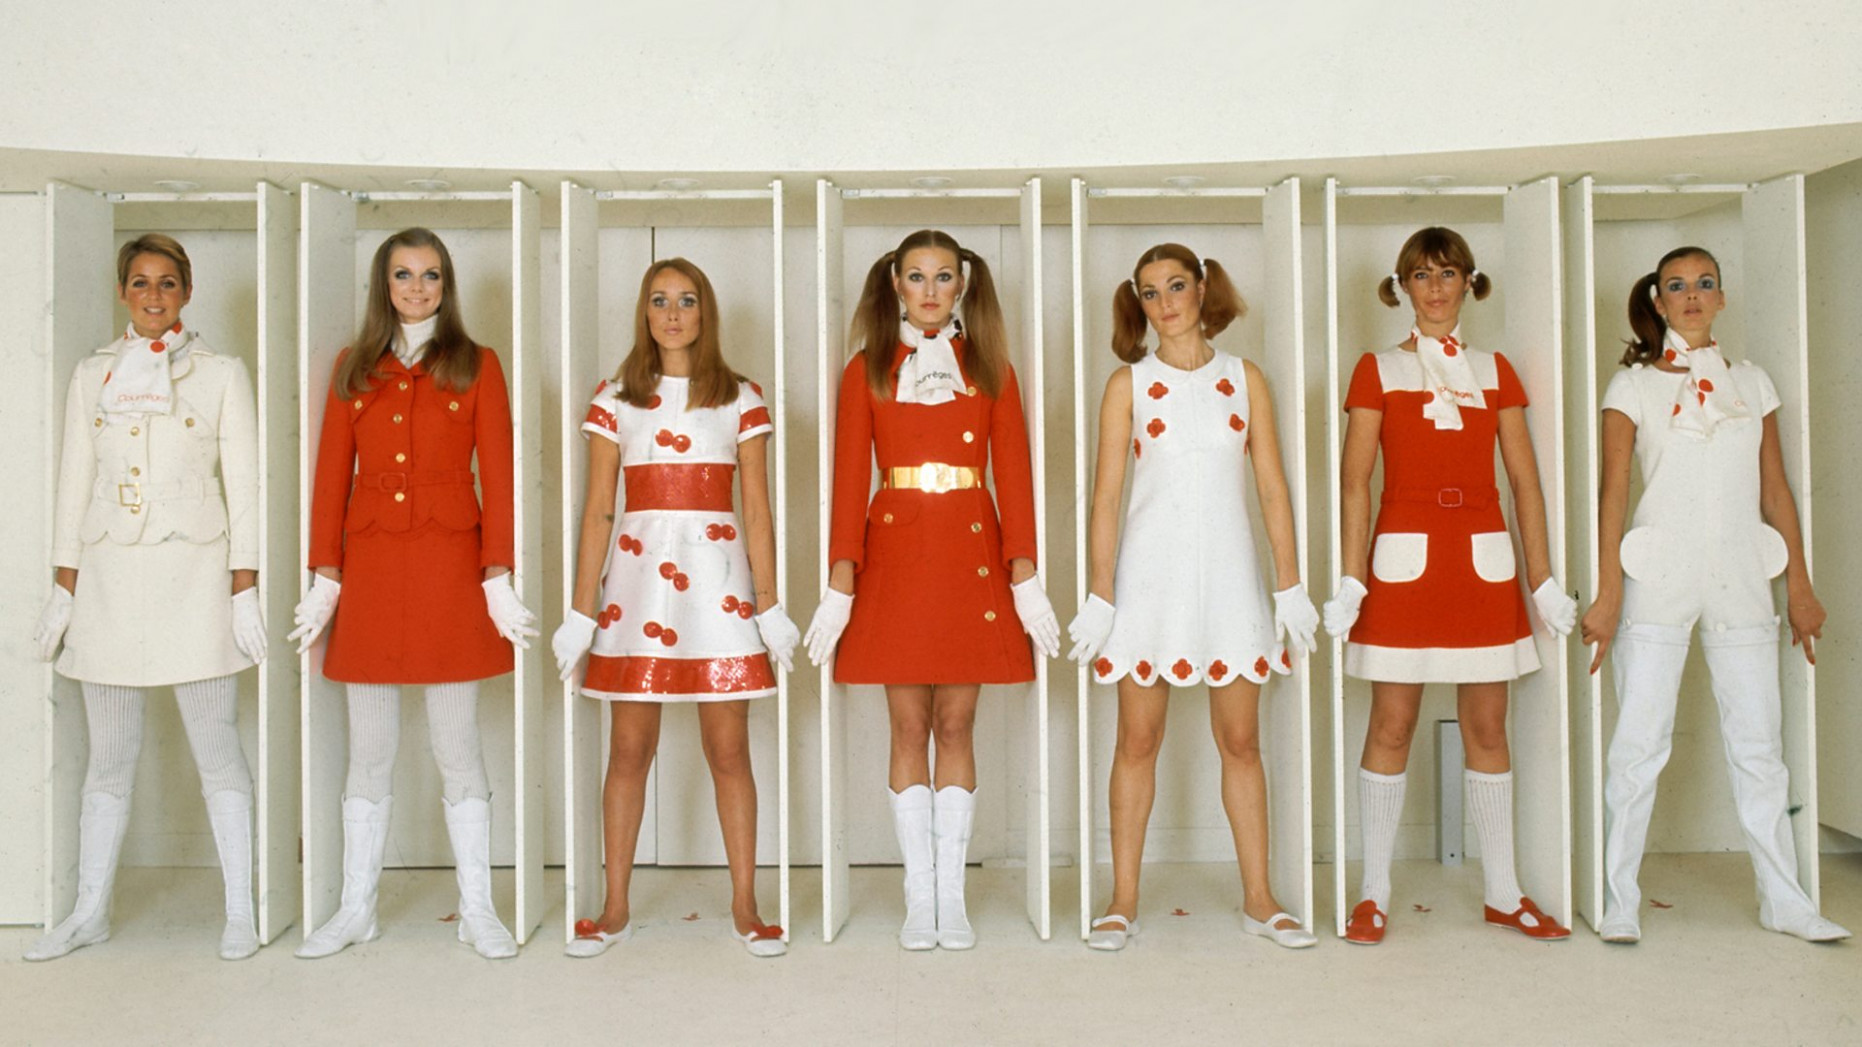 BBC Arts - BBC Arts - From moonwalk to catwalk: André Courrèges  - Andre Courreges